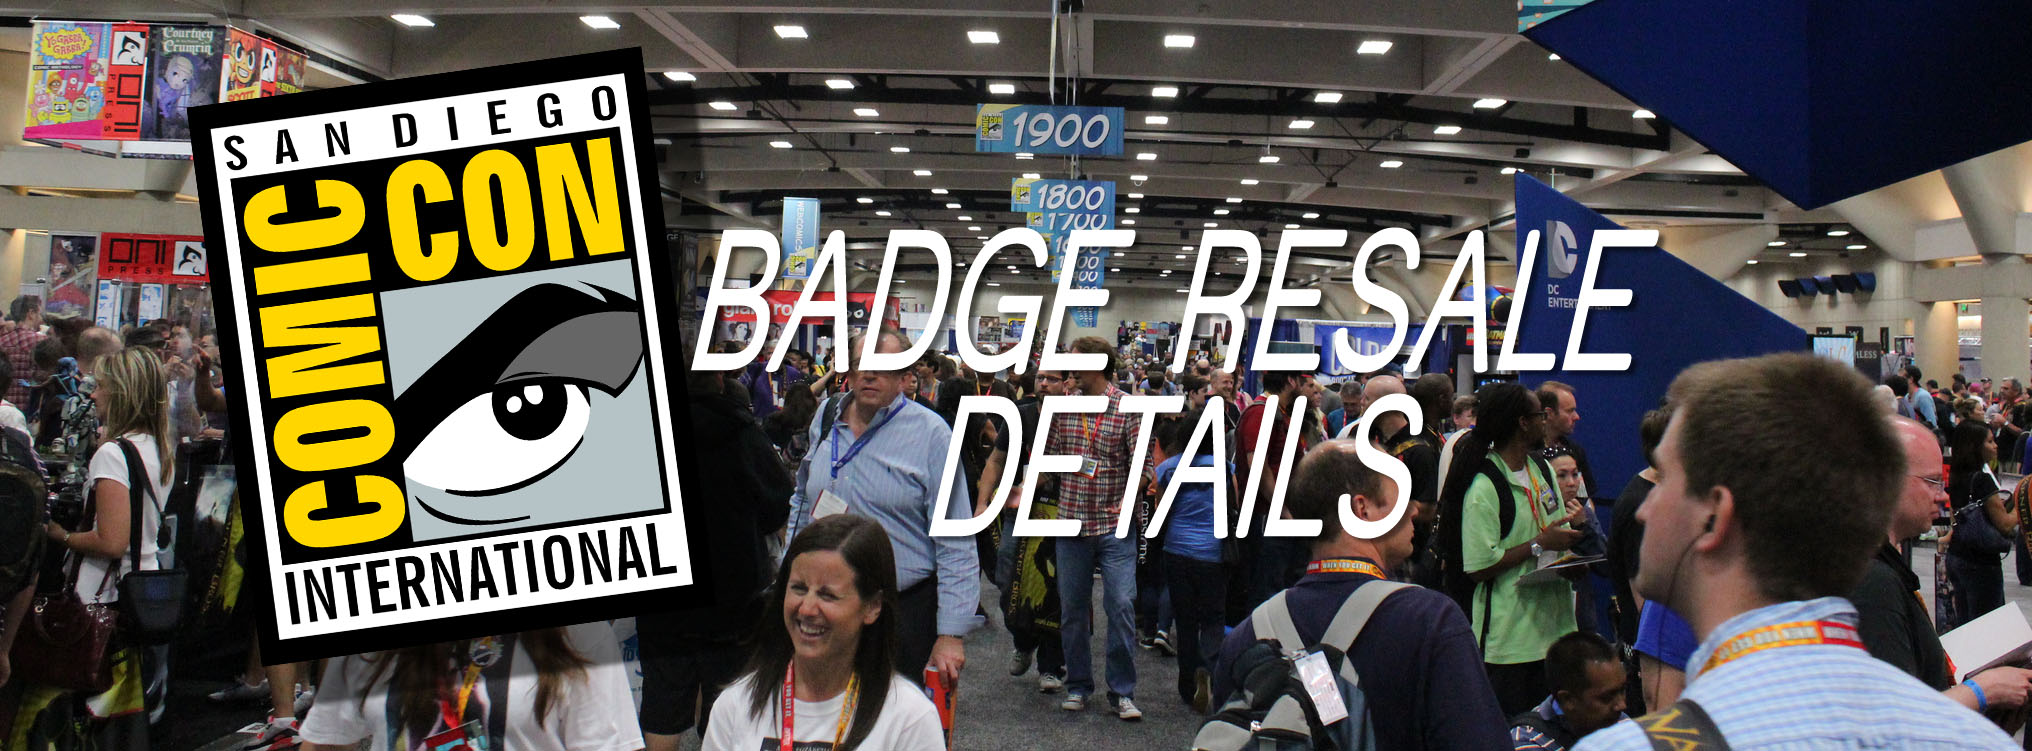 San Diego Comic Con 2013 Badge Resale Details